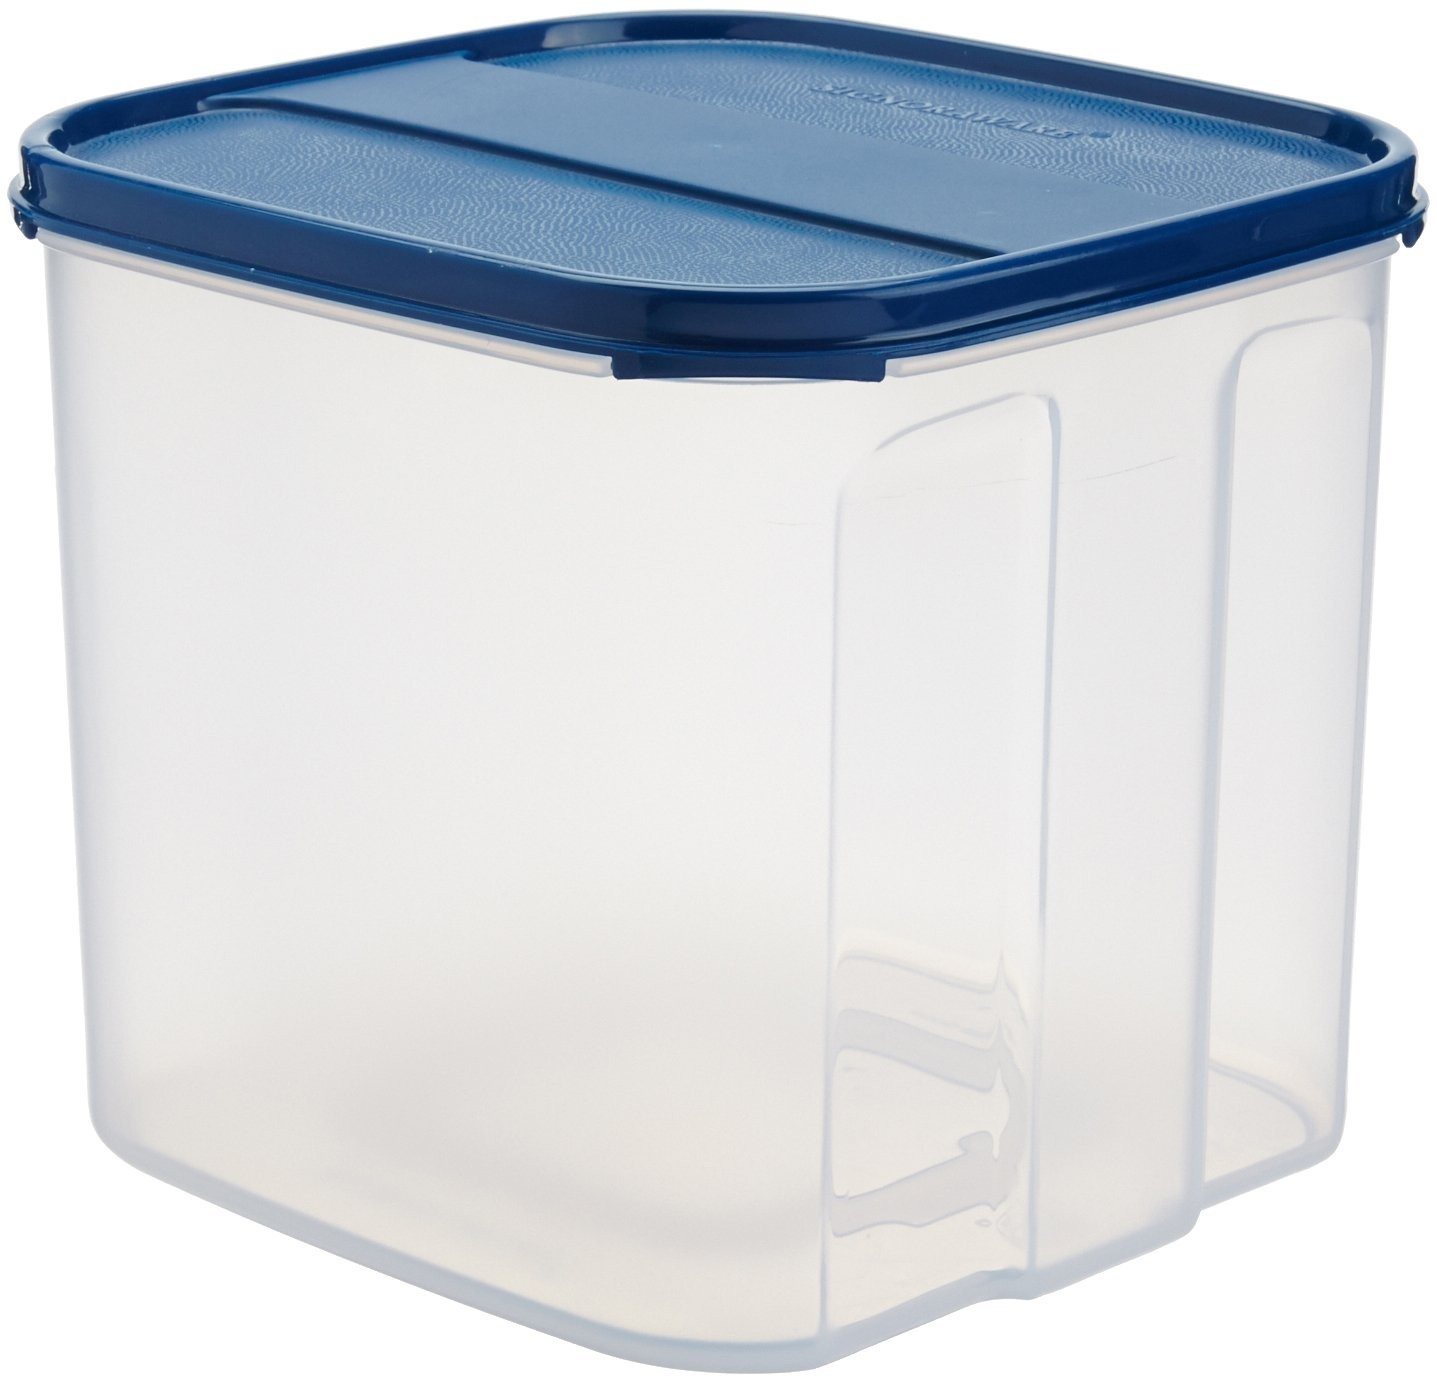 Signoraware Modular Square - 4.5 L Plastic Food Storage (Blue, White)